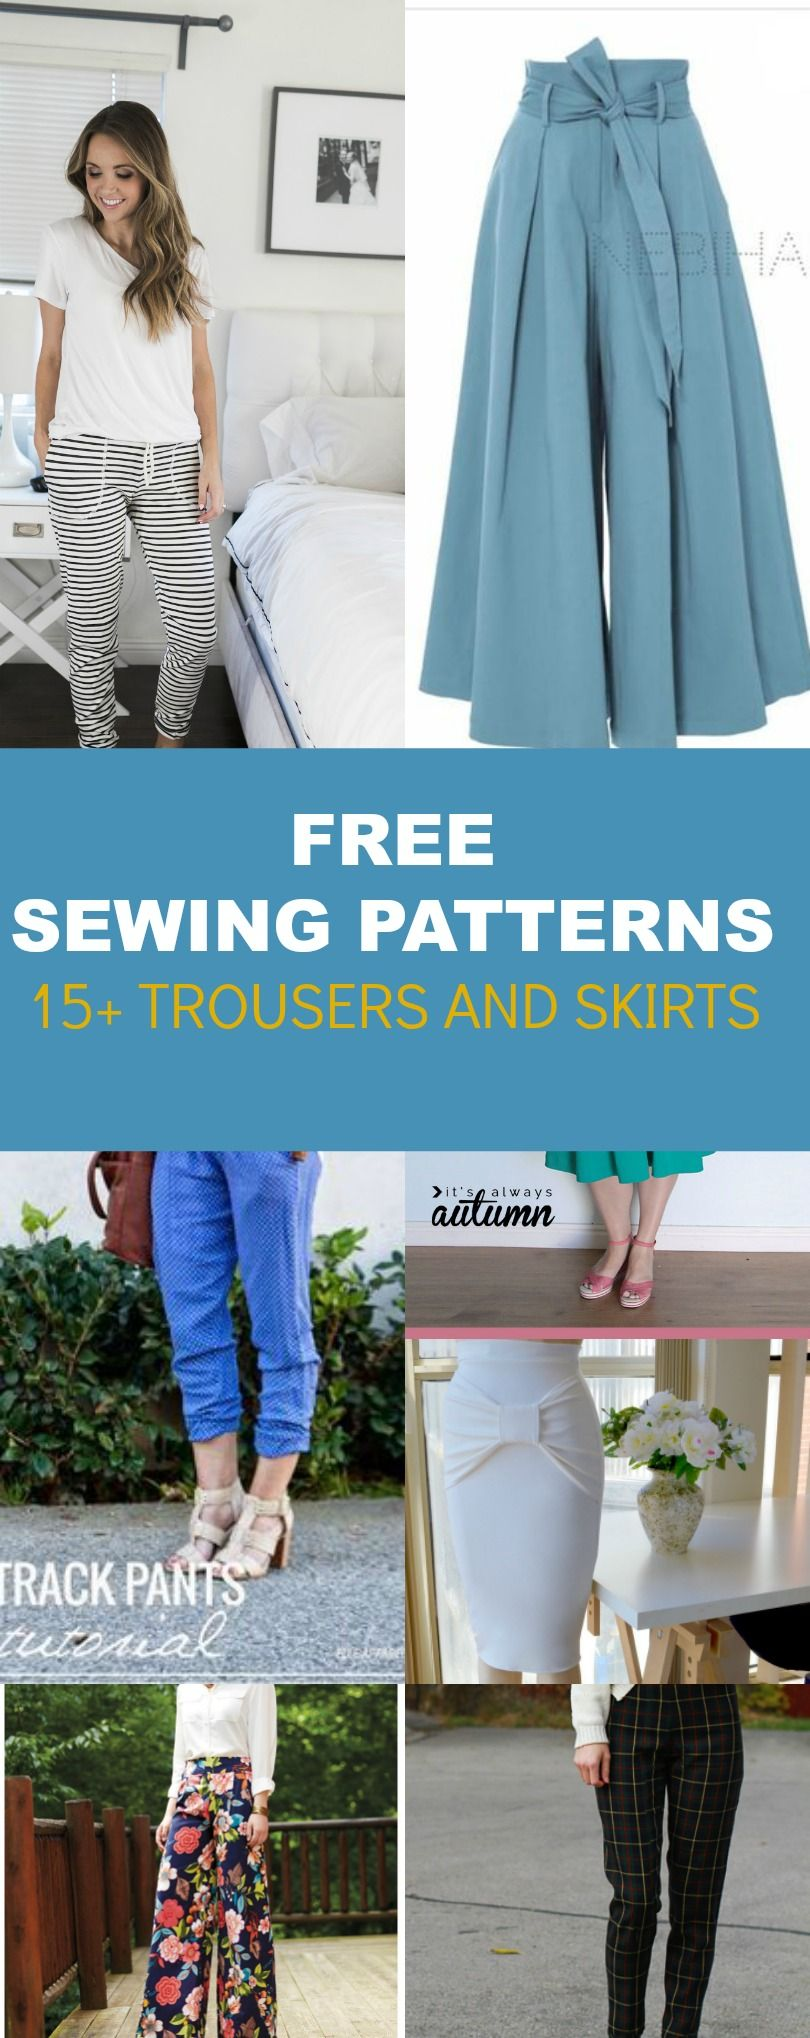 FREE PATTERN ALERT: 15+ Pants and Skirts Sewing Tutorials -   12 DIY Clothes Patterns free printable ideas